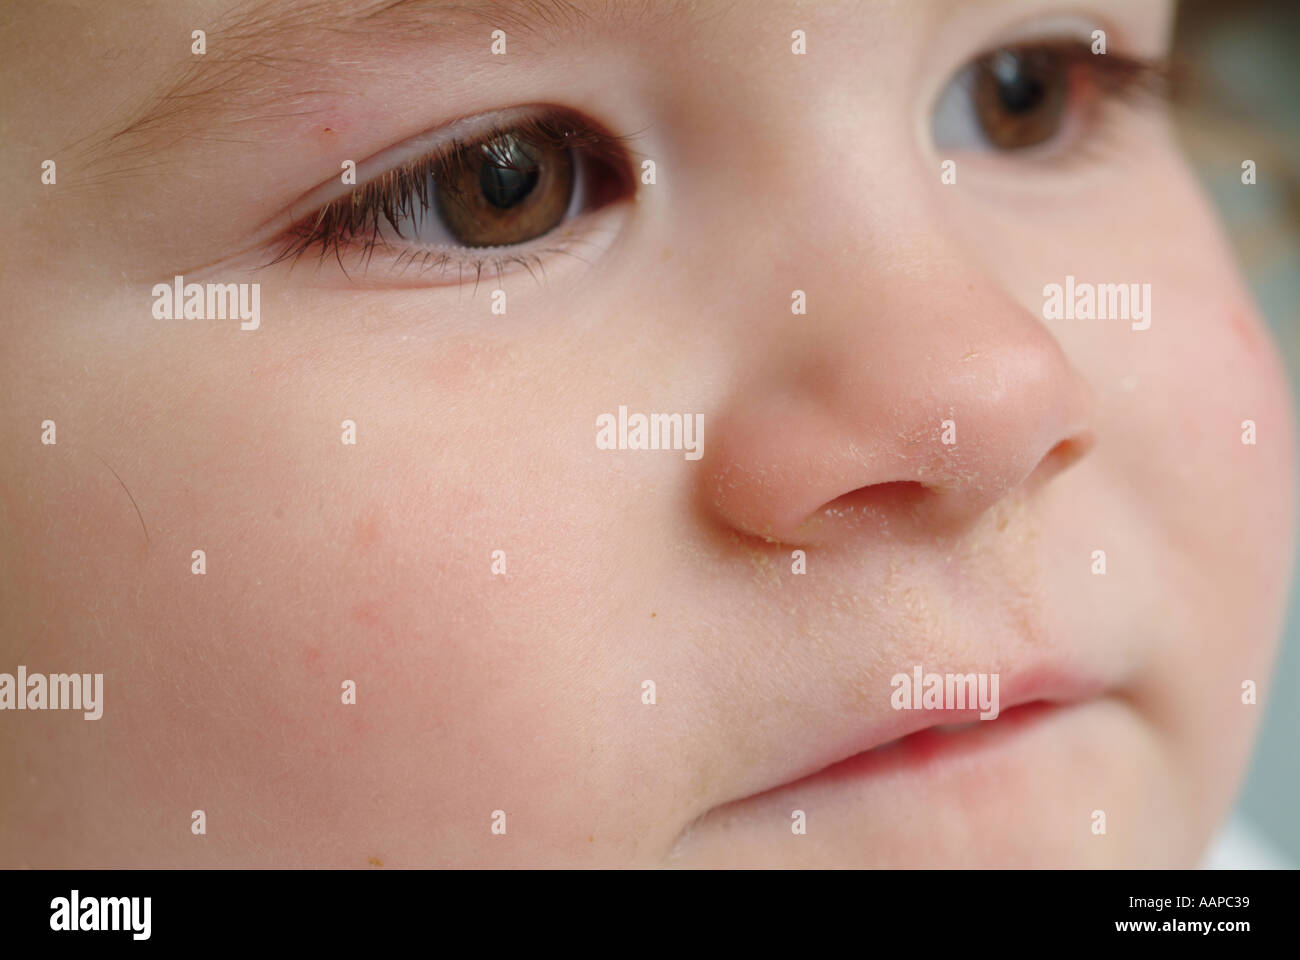 Baby Girl With Crusty Nose Stock Photo 2354232 Alamy